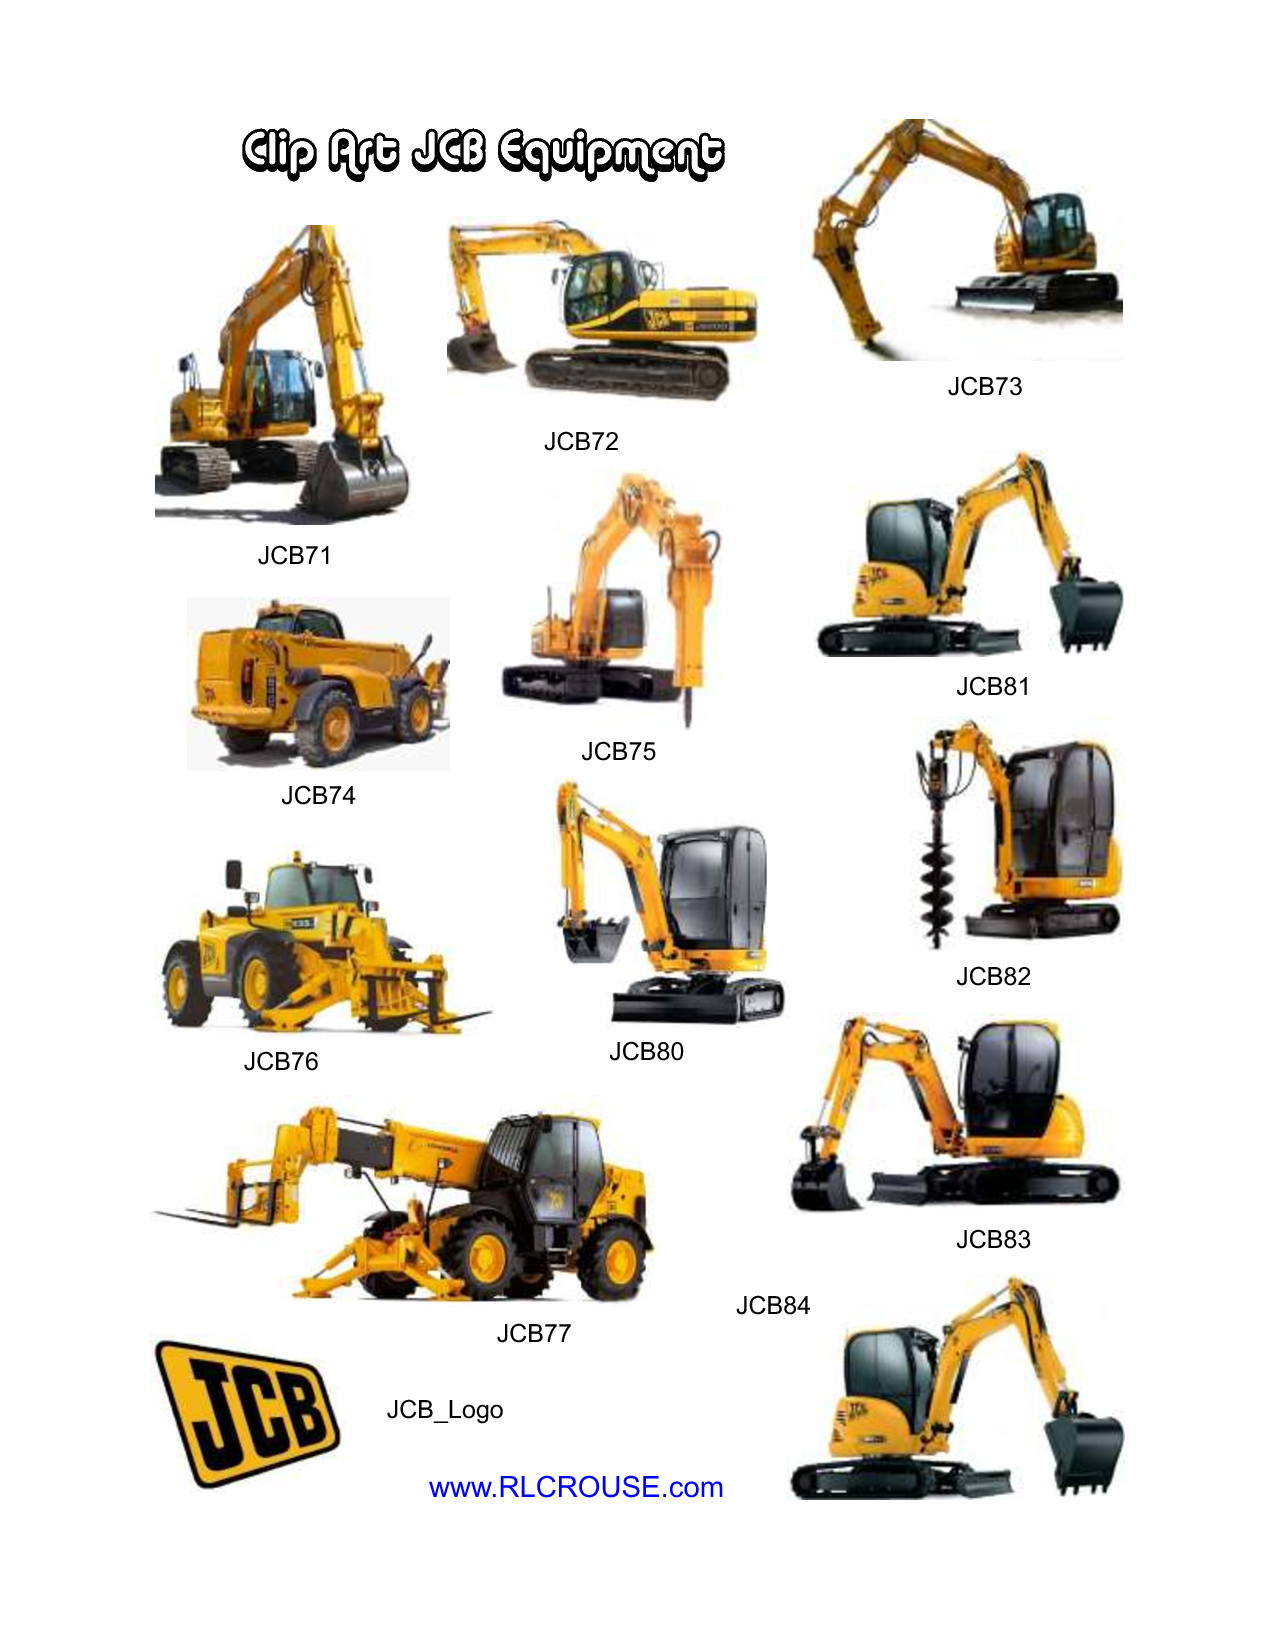 Construction machinery clipart image free library Free Excavating Equipment Cliparts, Download Free Clip Art, Free ... image free library